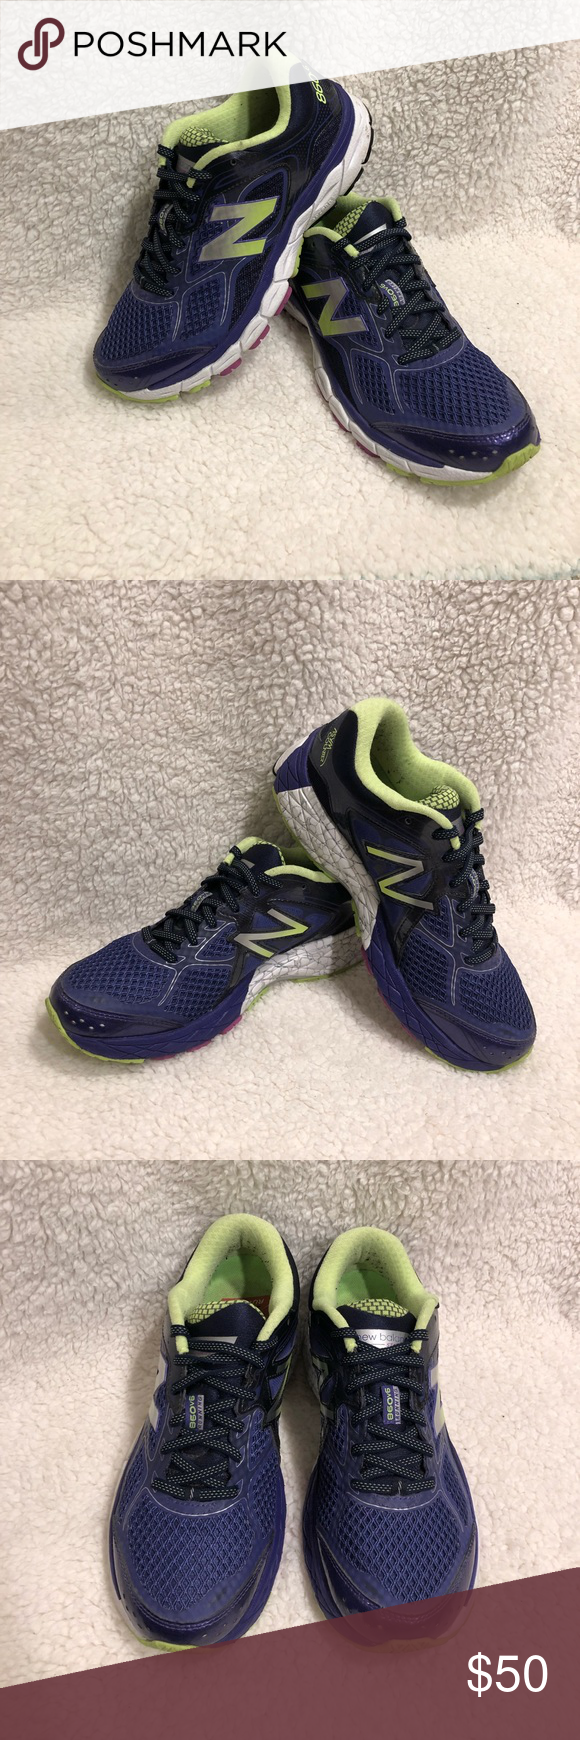 New Balance 860 Running shoe The 860 is